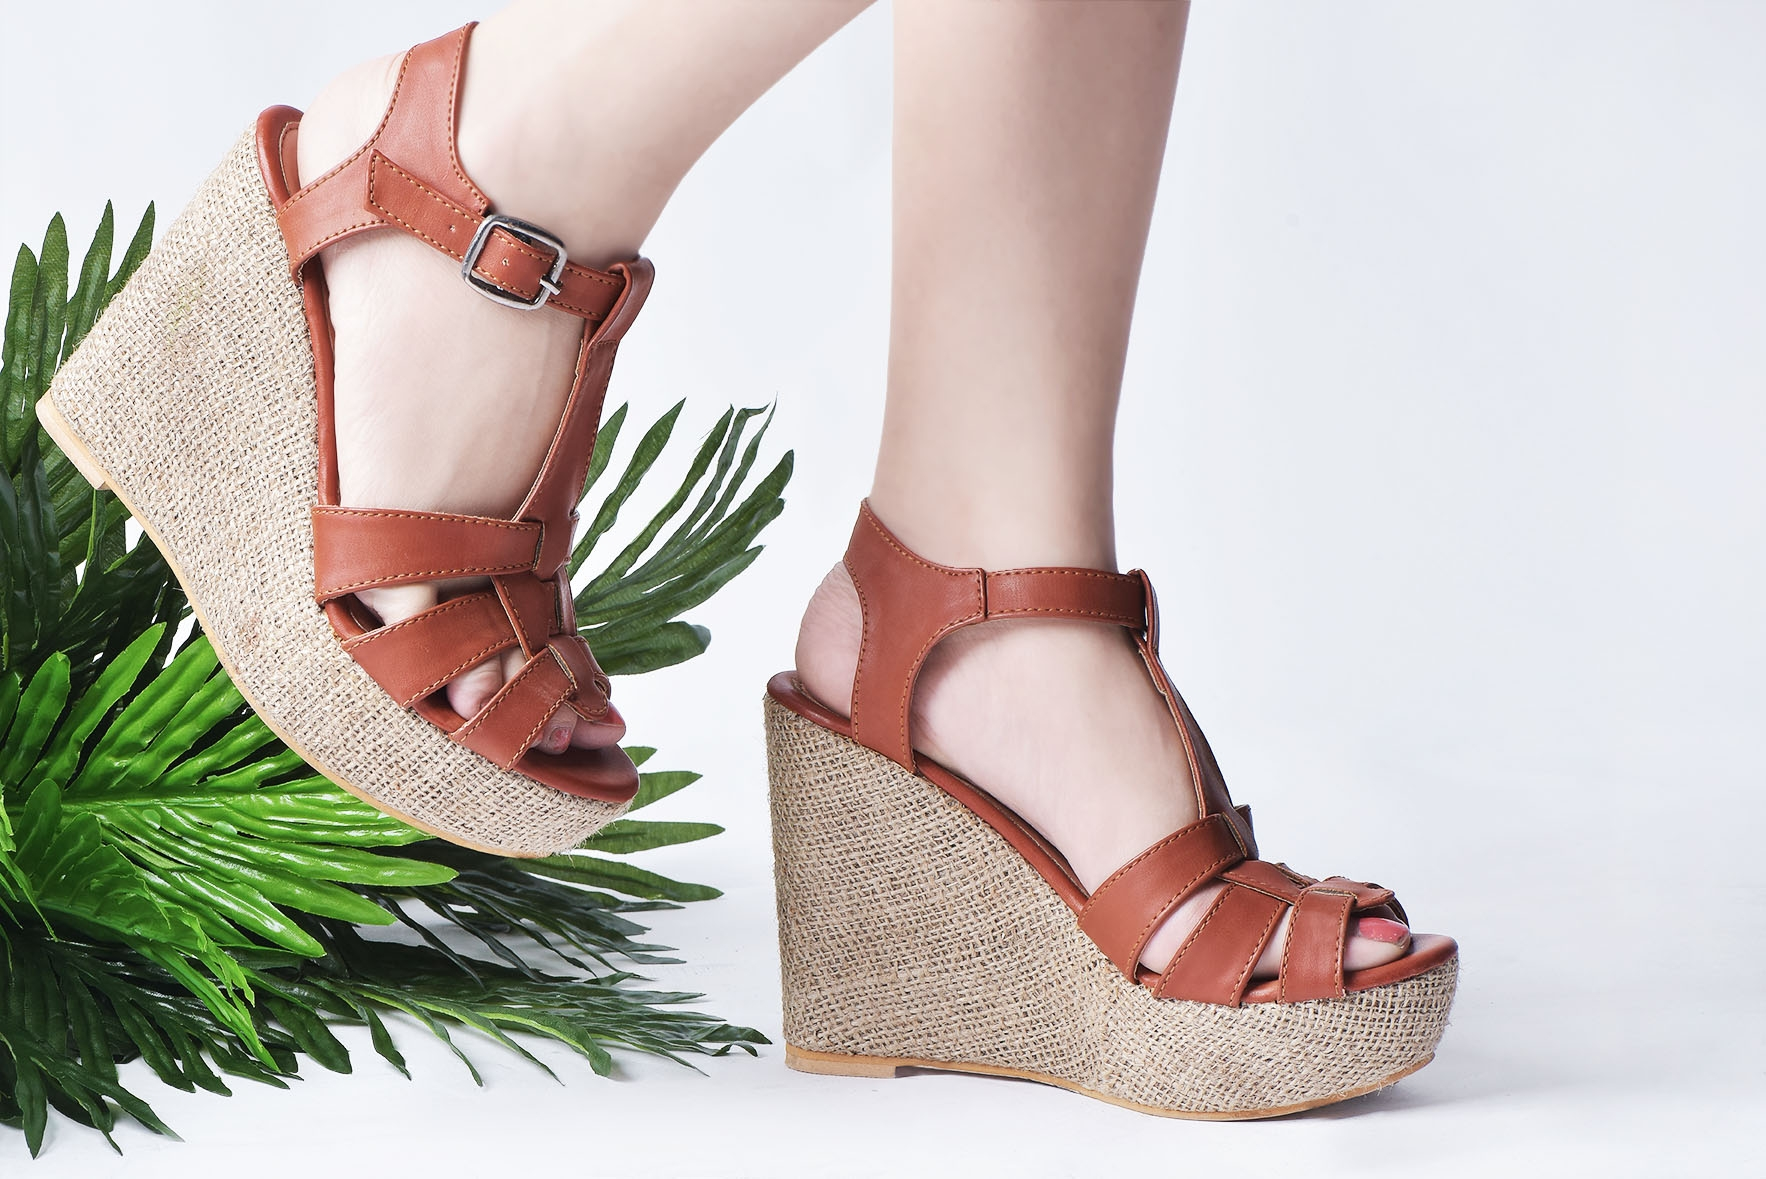 The Love Wedges